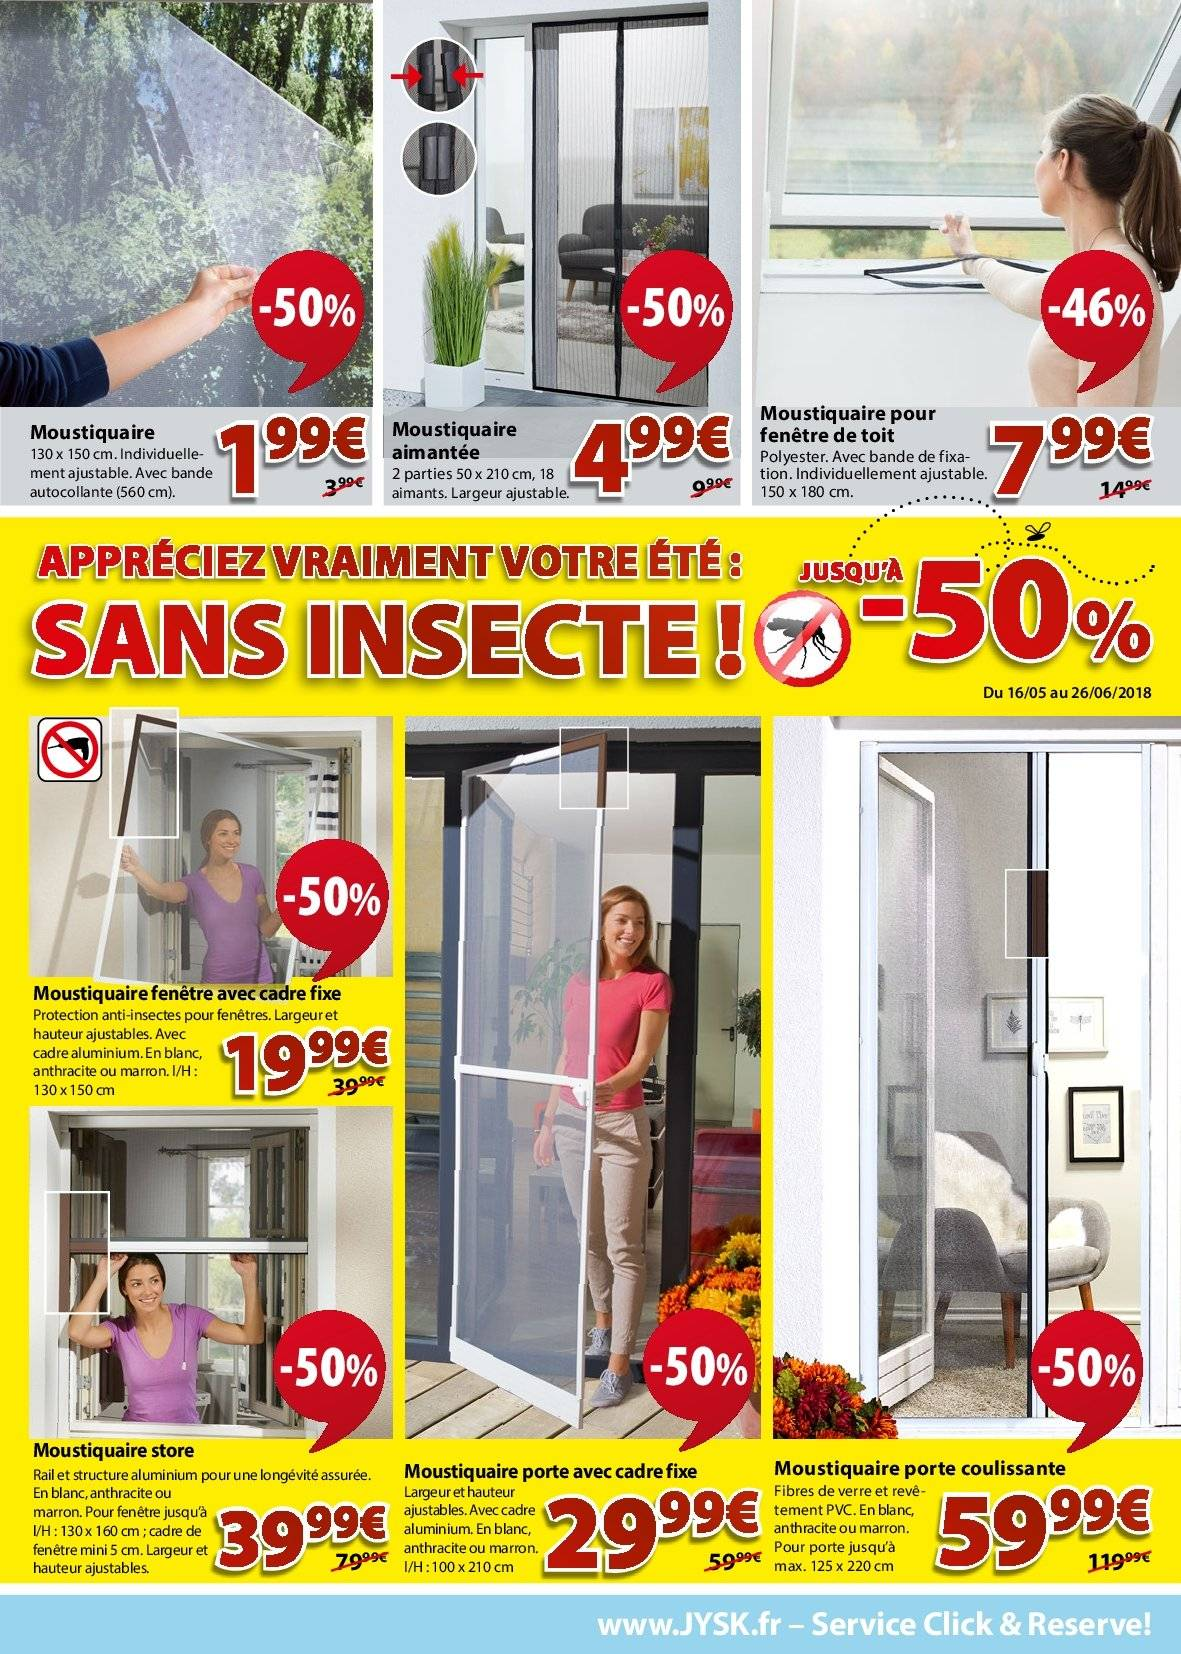 Catalogue JYSK - 13.06.2018 - 26.06.2018 - Produits soldés - marron. Page 11.